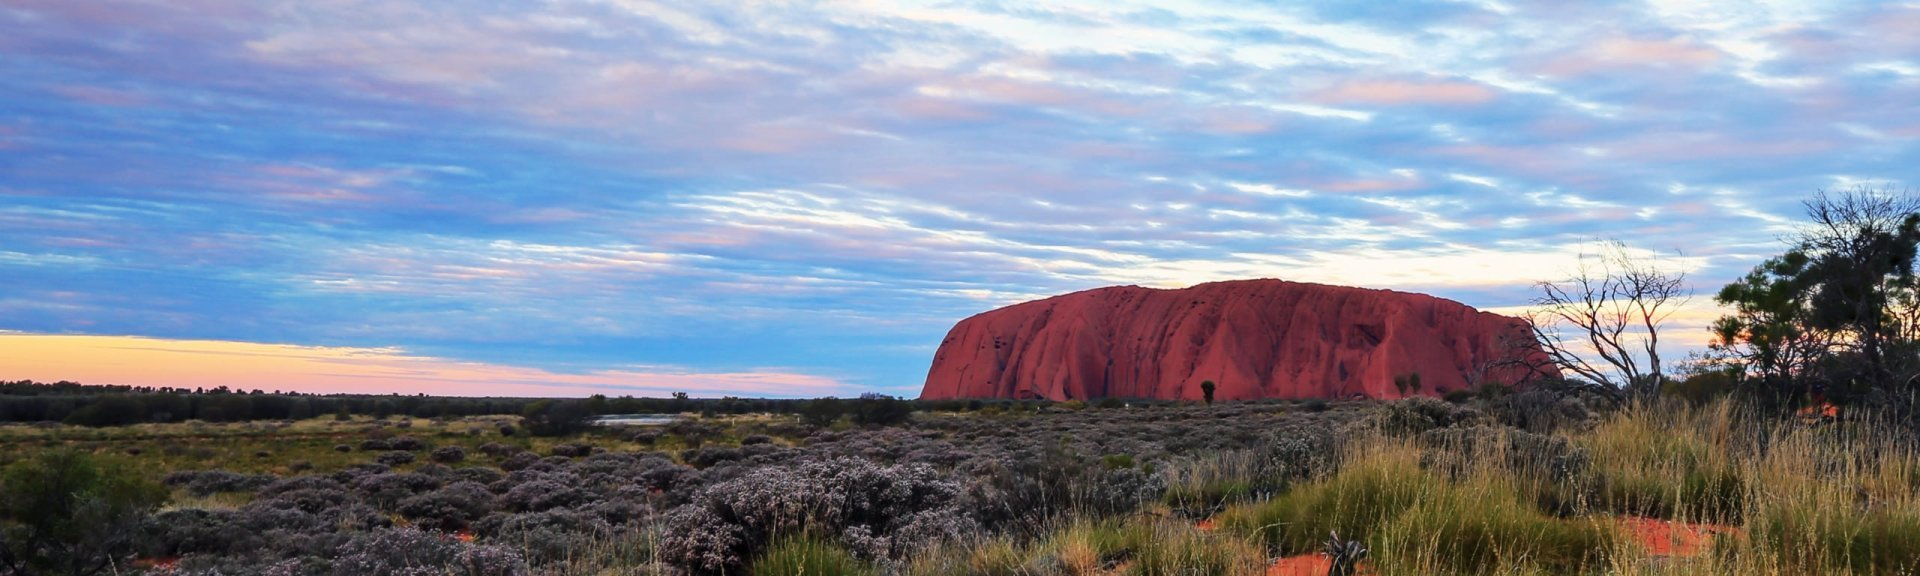 Uluru. Photo: Maree Clout